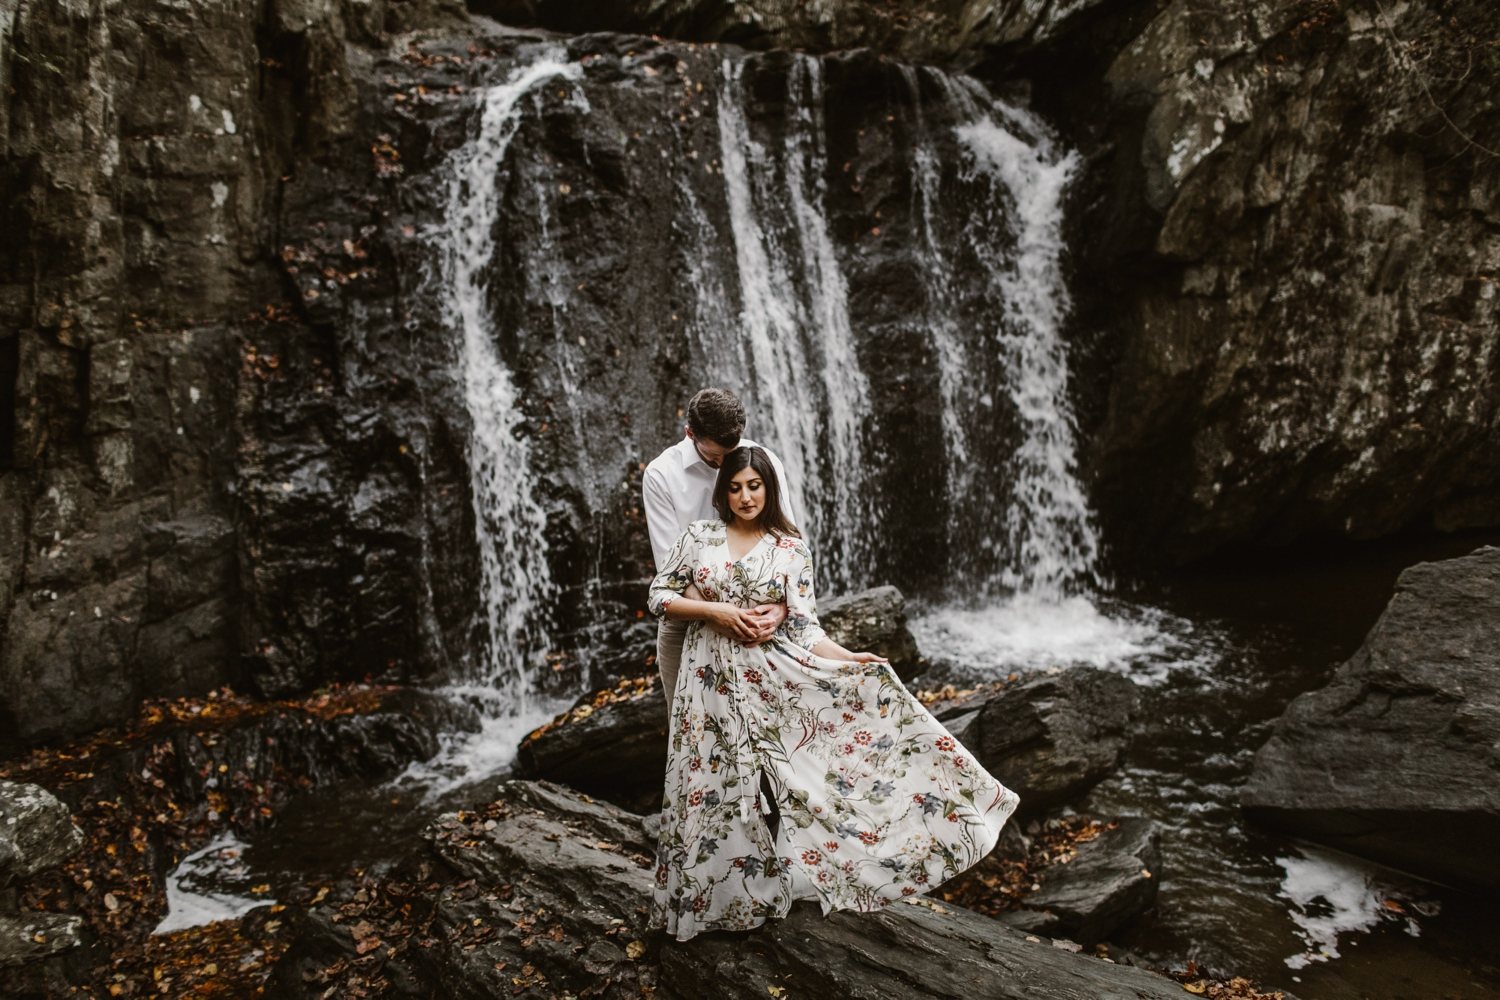 sundas-and-scotts-engagement-98_baltimore-washington-d-c-waterfall-kilgore-engagement-session-maxi-dress-earthy-maryland-wedding-photographer-kate-ann-photography-phot